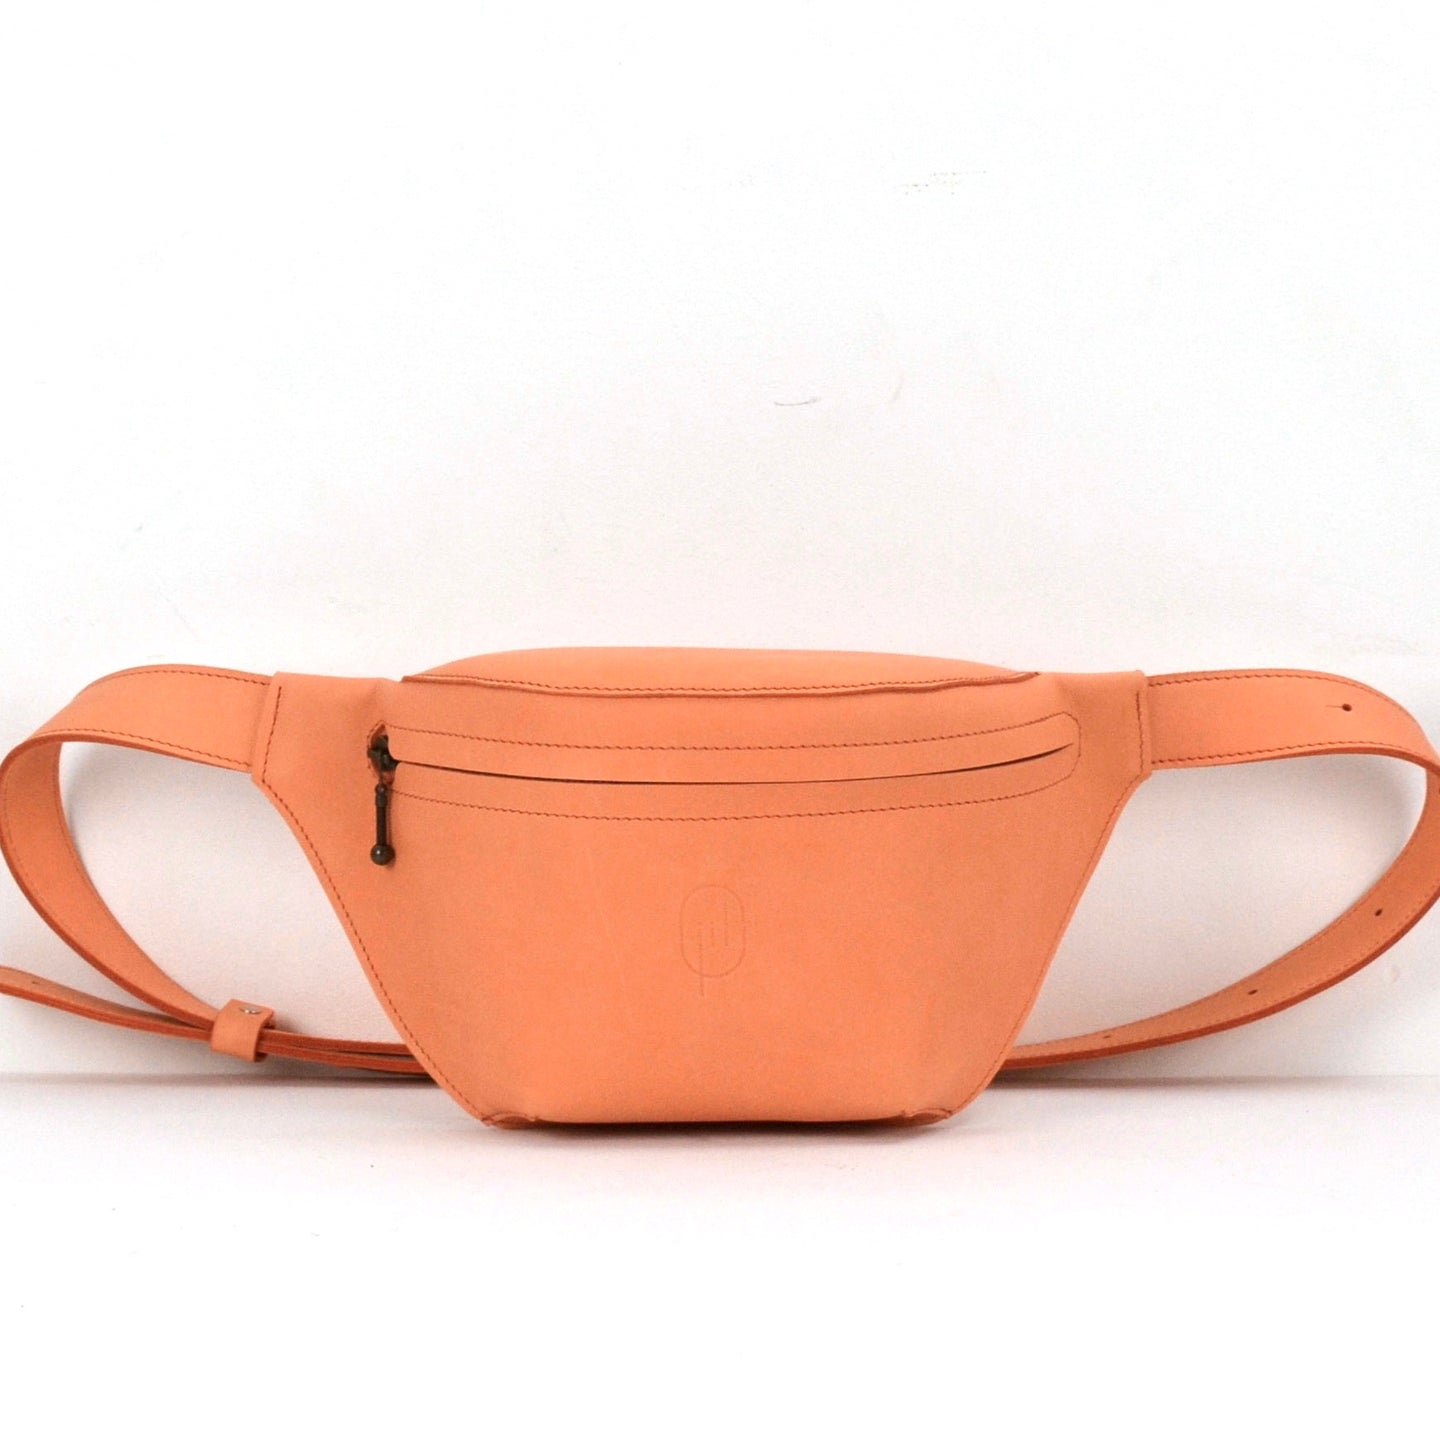 fanny pack #54